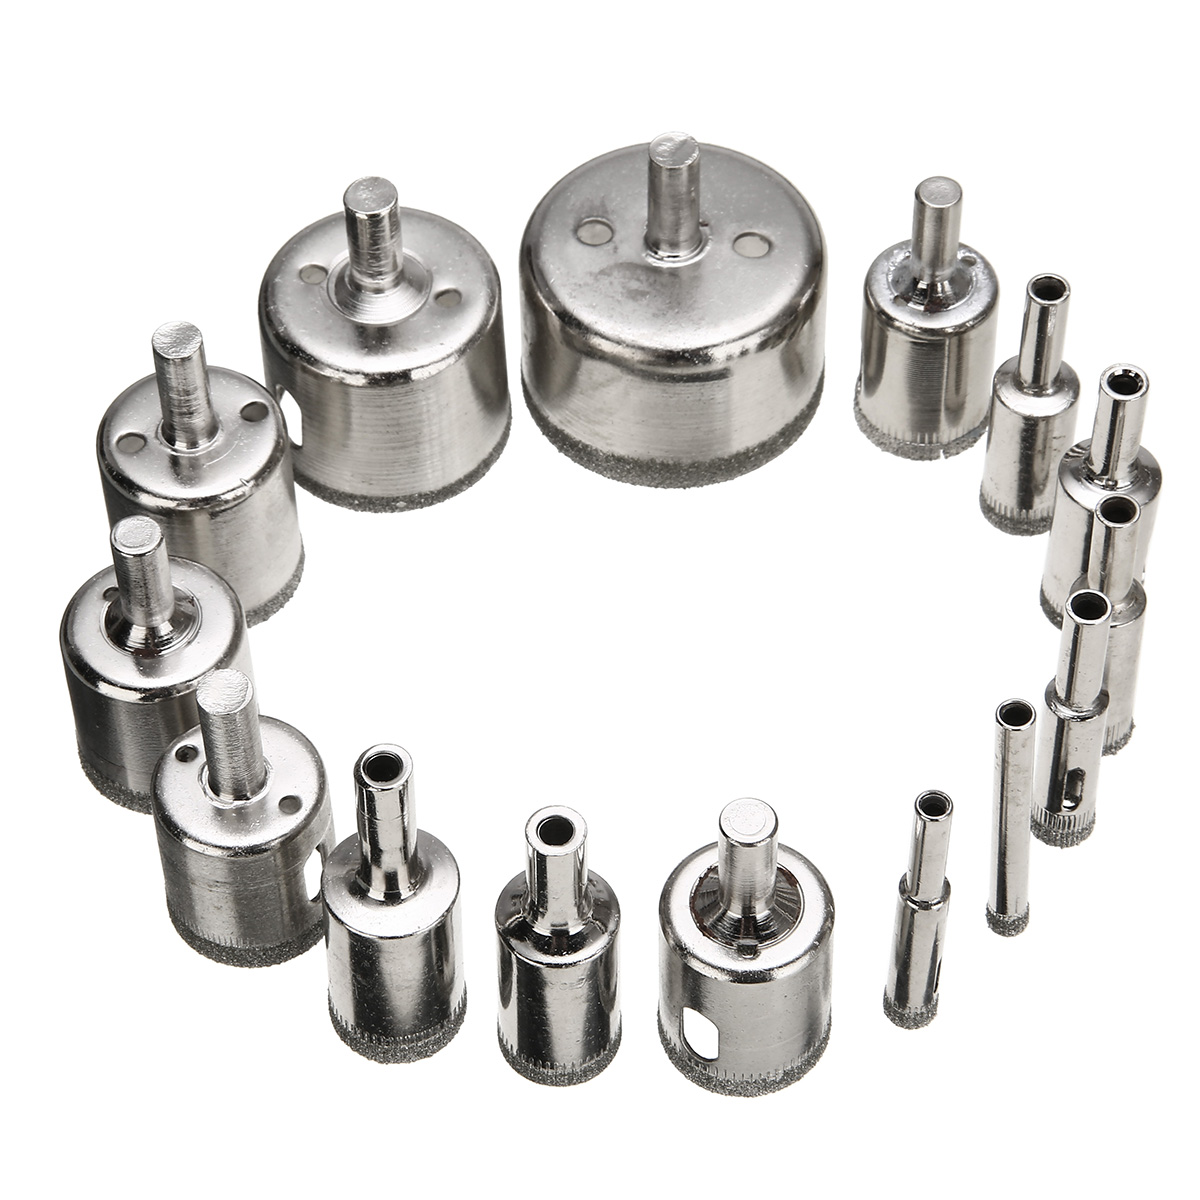 цена на 15PCS Hole Saw Drill Diamond Coated Drill Bits Set Tile Marble Glass Ceramic Holesaw 6mm-50mm Hand Tools